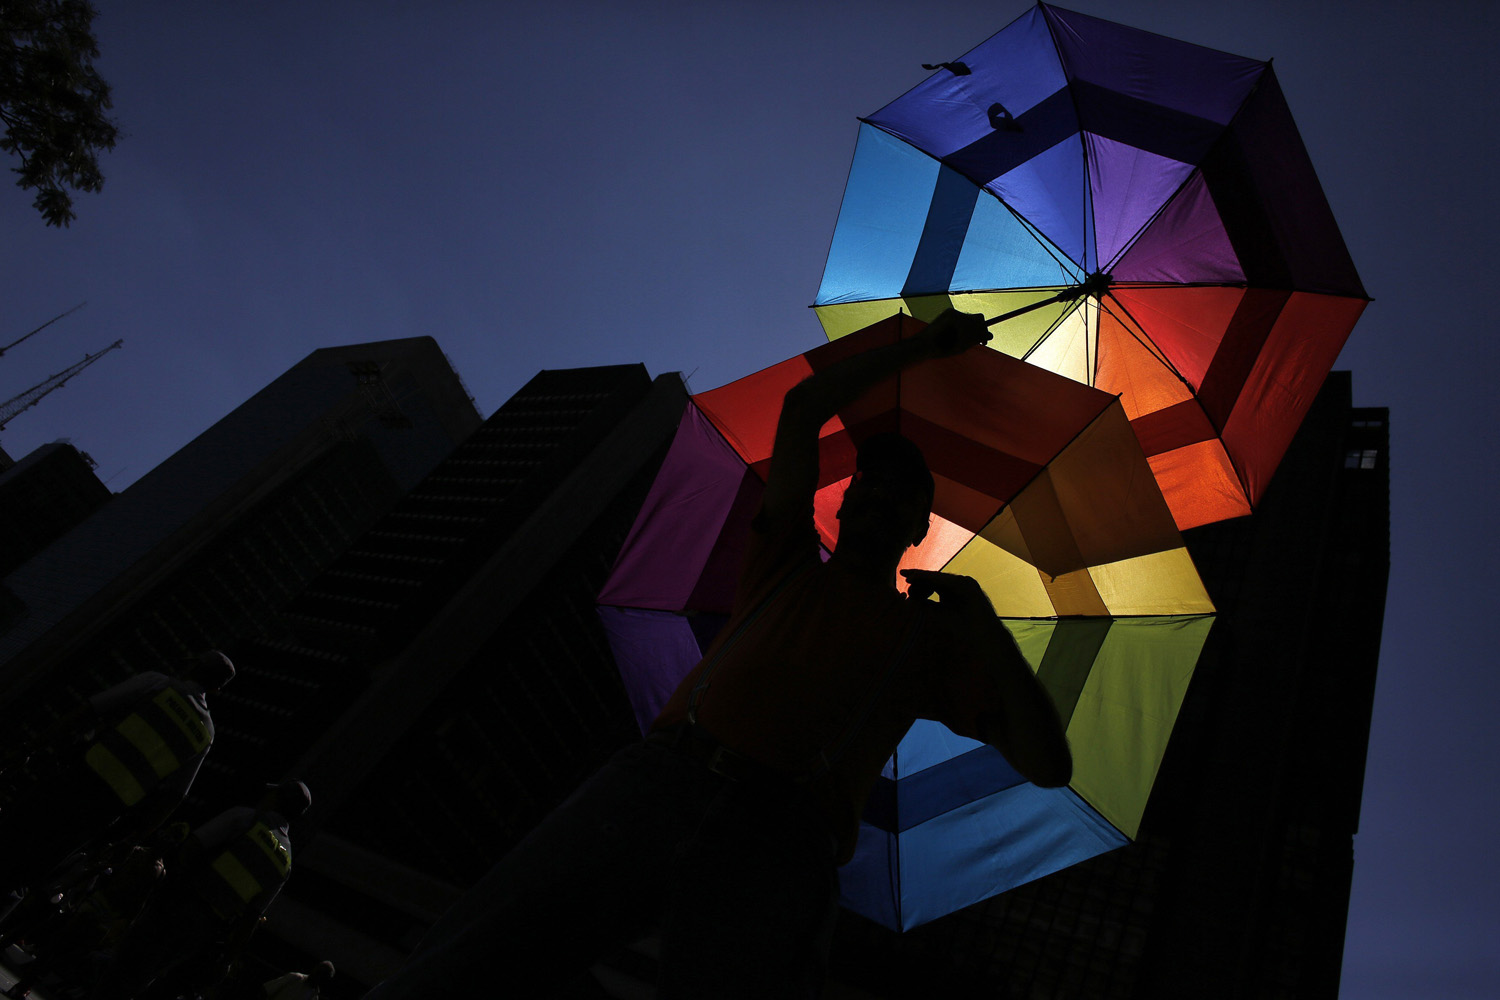 A reveller holds up rainbow coloured umbrellas during the 18th Gay Pride Parade in Avenida Paulista in Sao Paulo May 4, 2014.